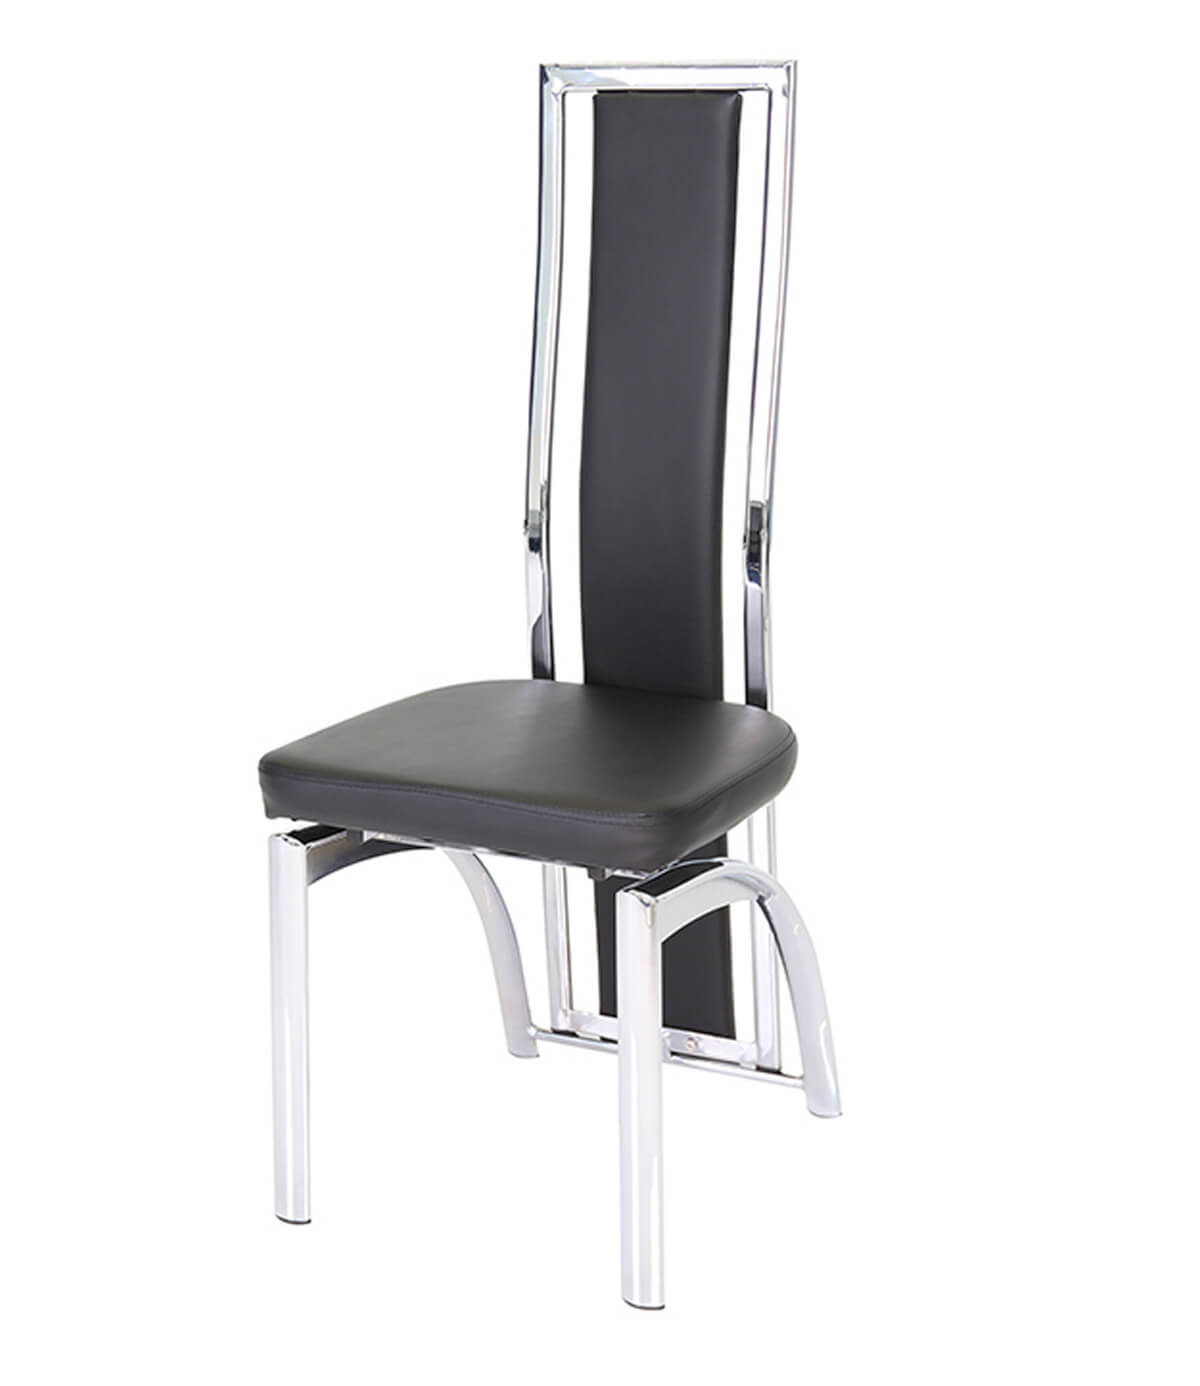 chrome dining chairs uk two seat table and mayfair black leather chair manchester furniture